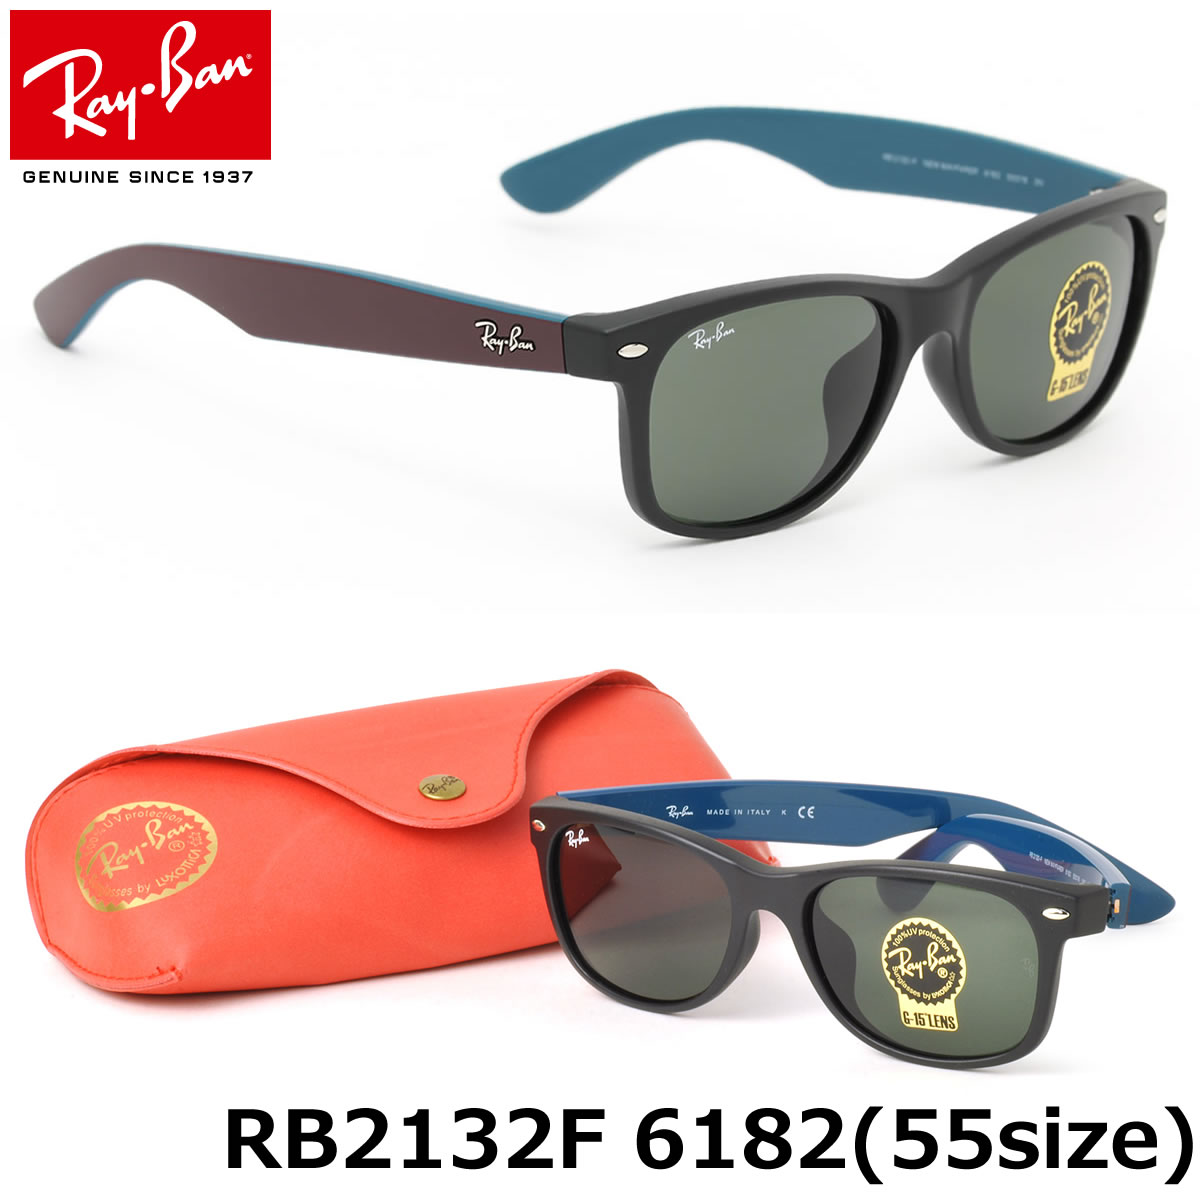 499023ed687 Pronoun Ray-Ban of a Wayfarer is to stylish contemporary and is now  available. Than the original Wayfarer has become somewhat a thinner  silhouette.